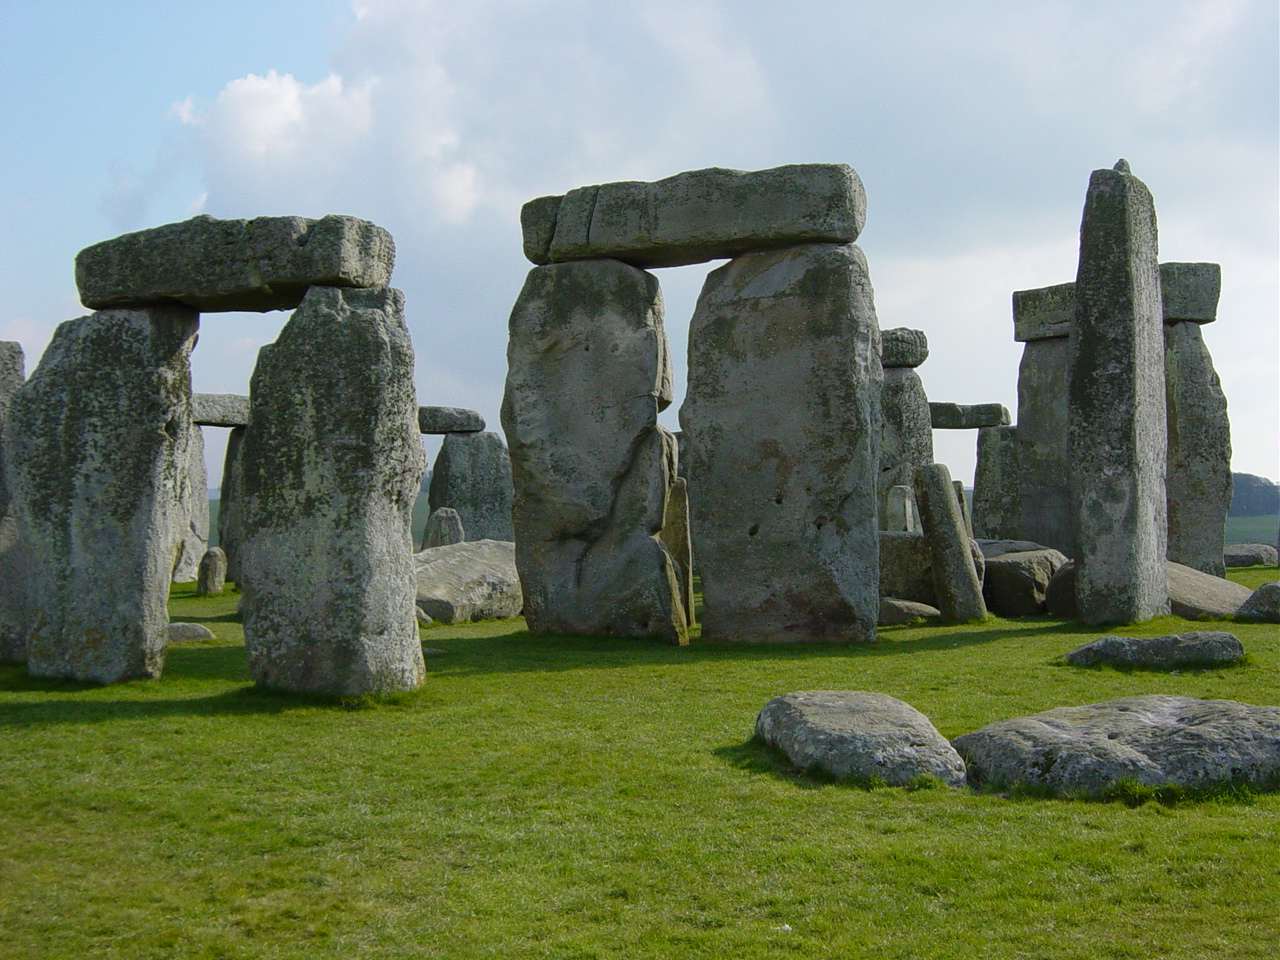 How was stonehenge built